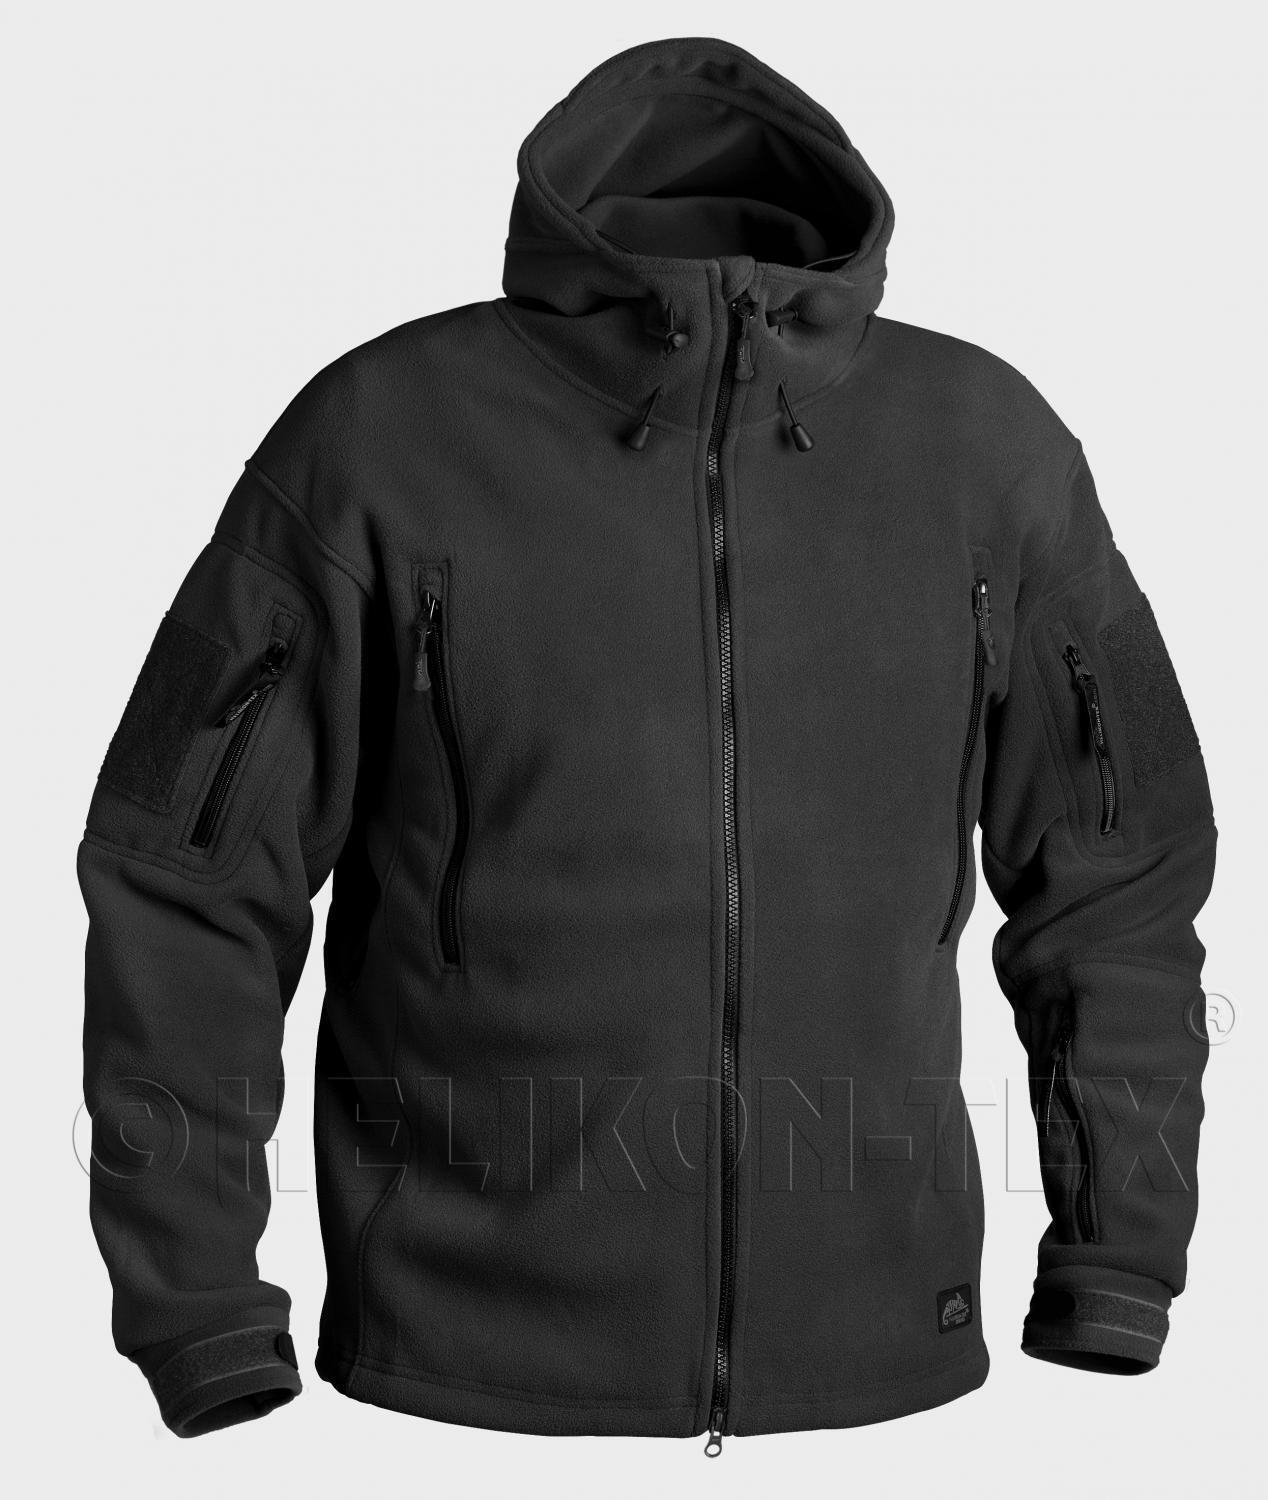 HELIKON TEX PATRIOT 390er HEAVY FLEECE Outdoor Kapuzen JACKE Jacket schwarz L